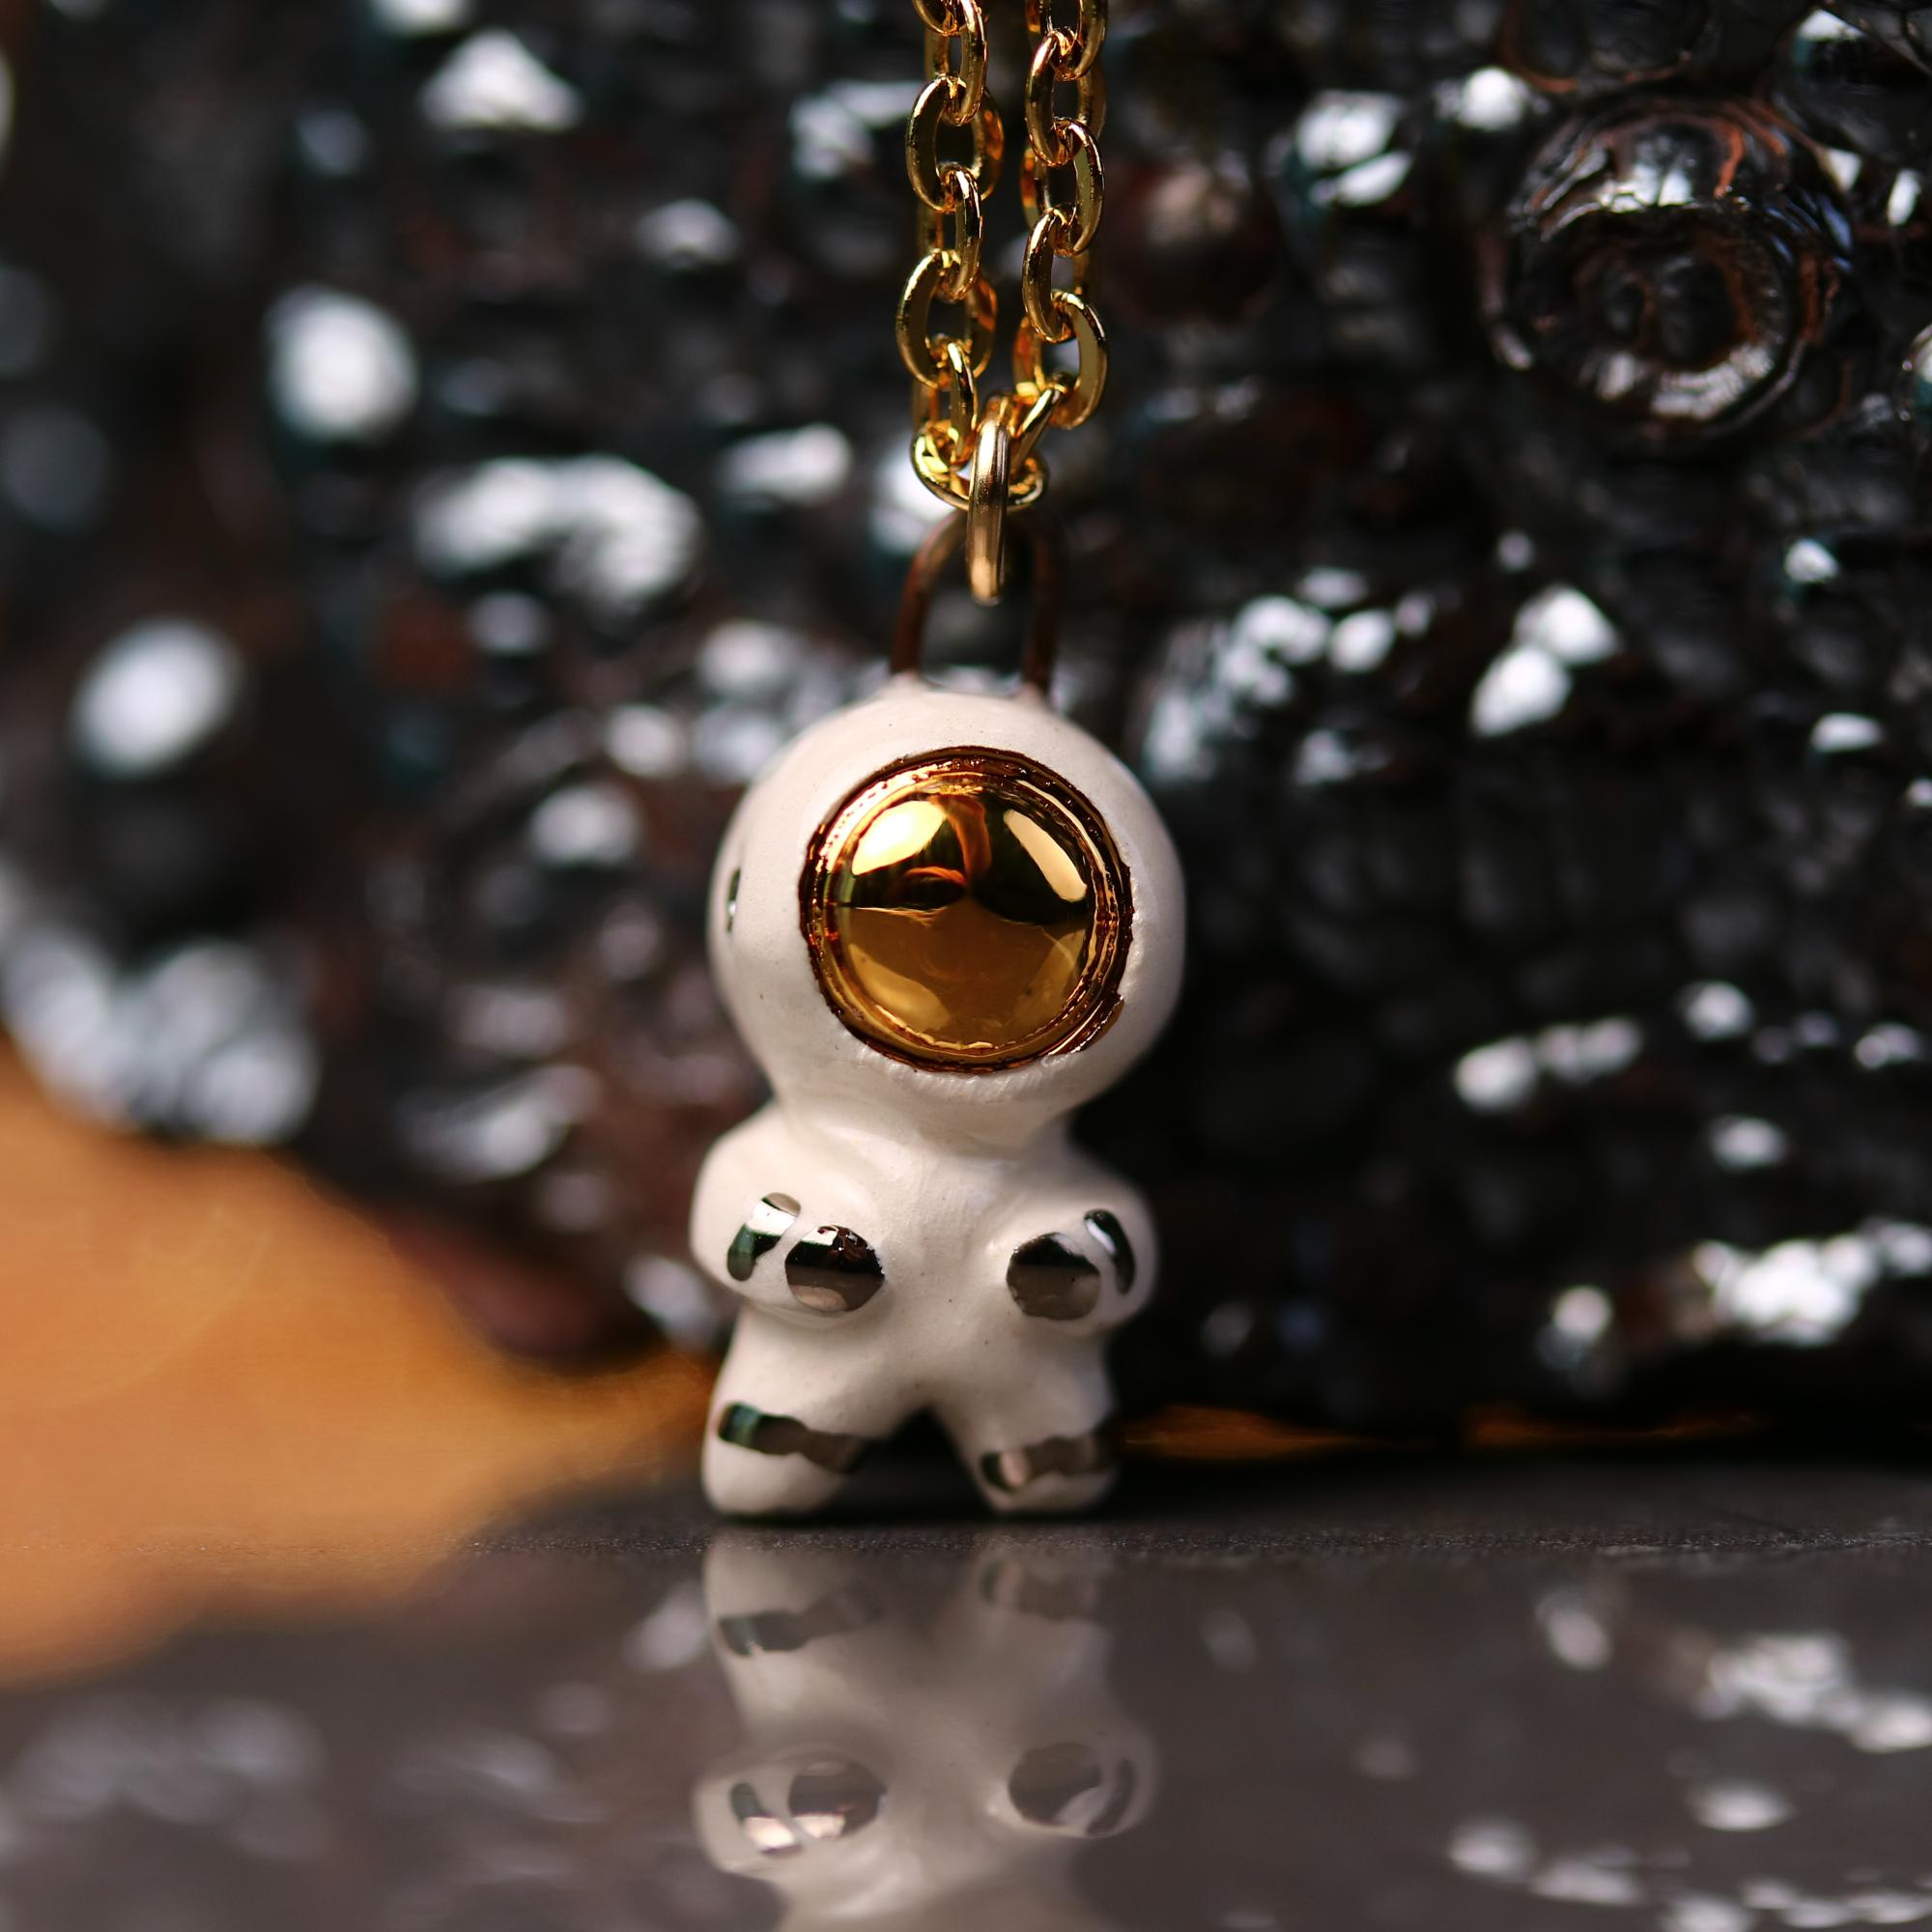 Tiny Astronaut Necklace